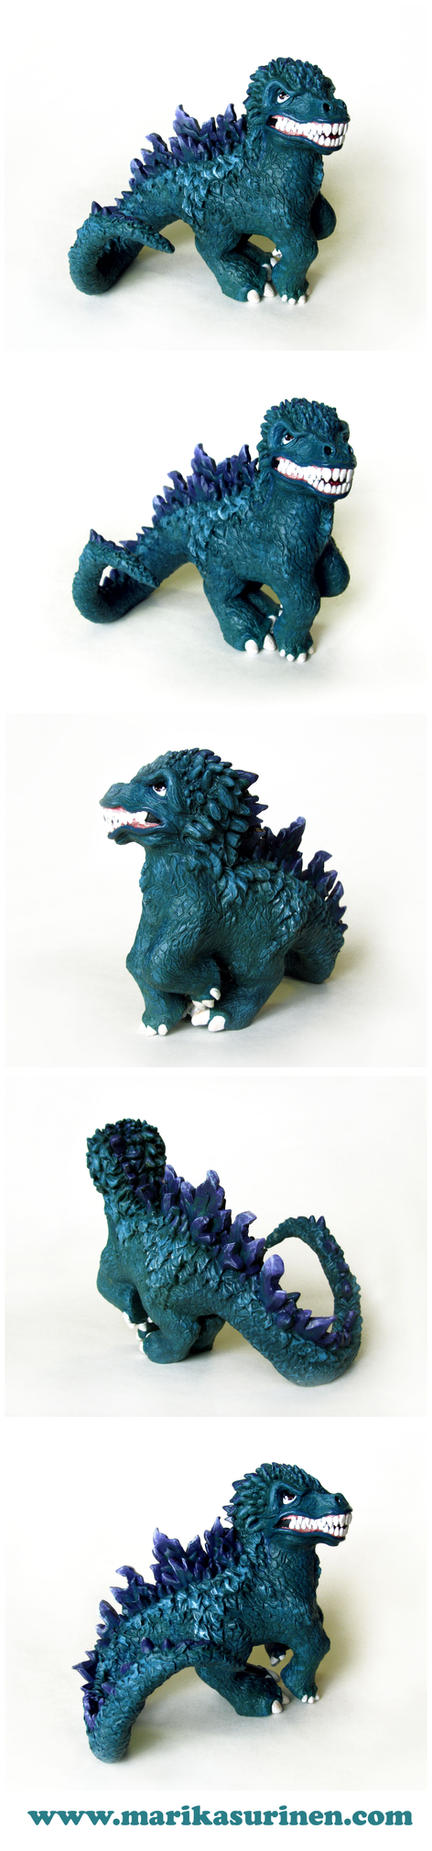 My Little Godzilla by Spippo